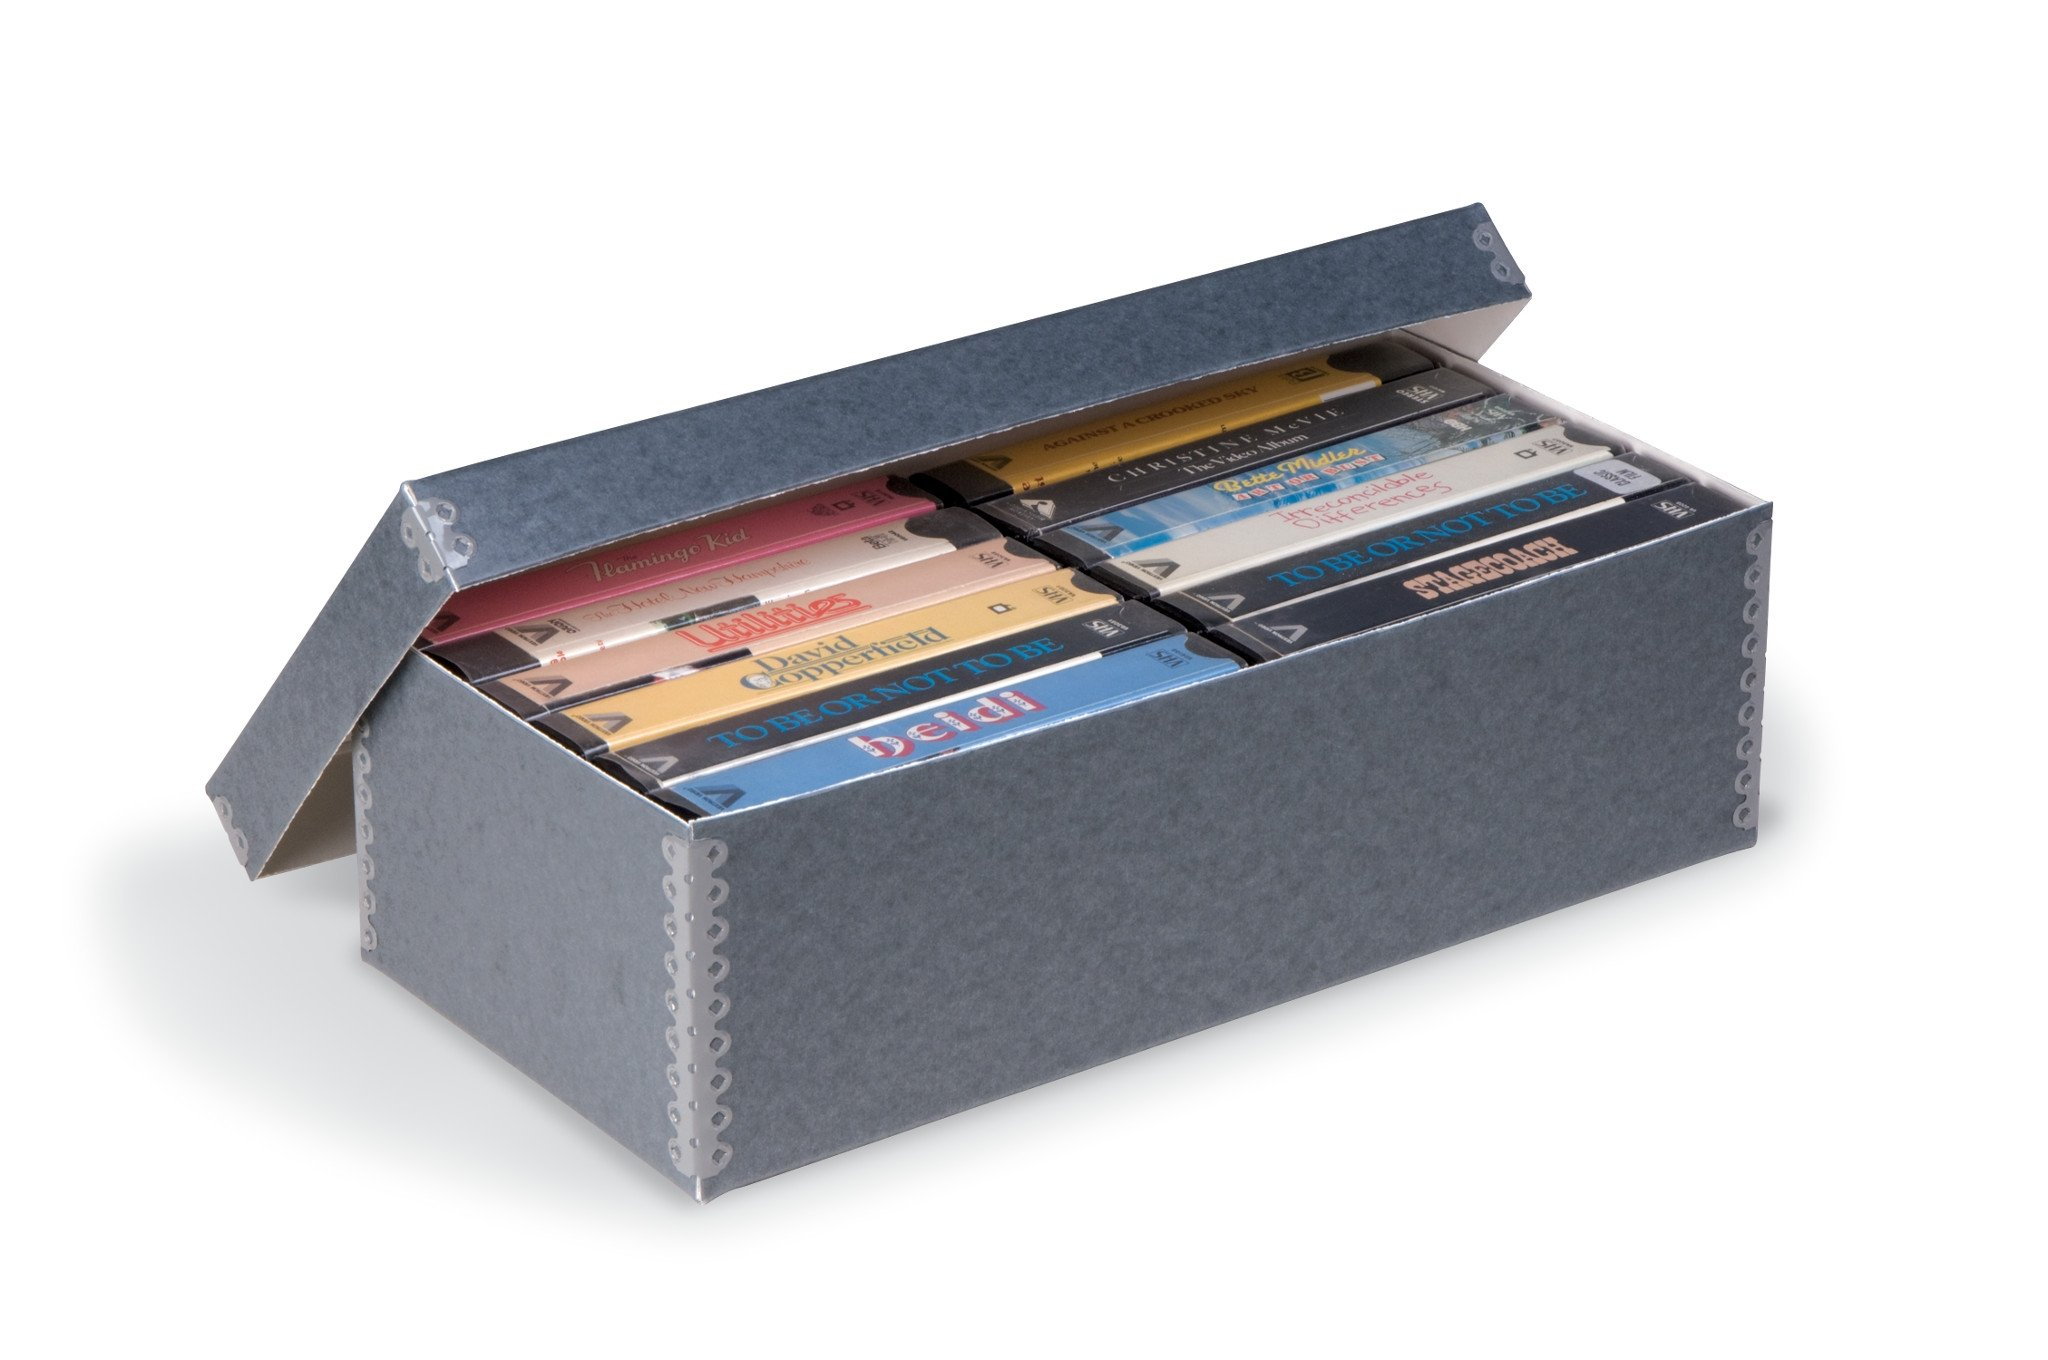 Gaylord Archival Videocassette Storage Box by Gaylord Archival